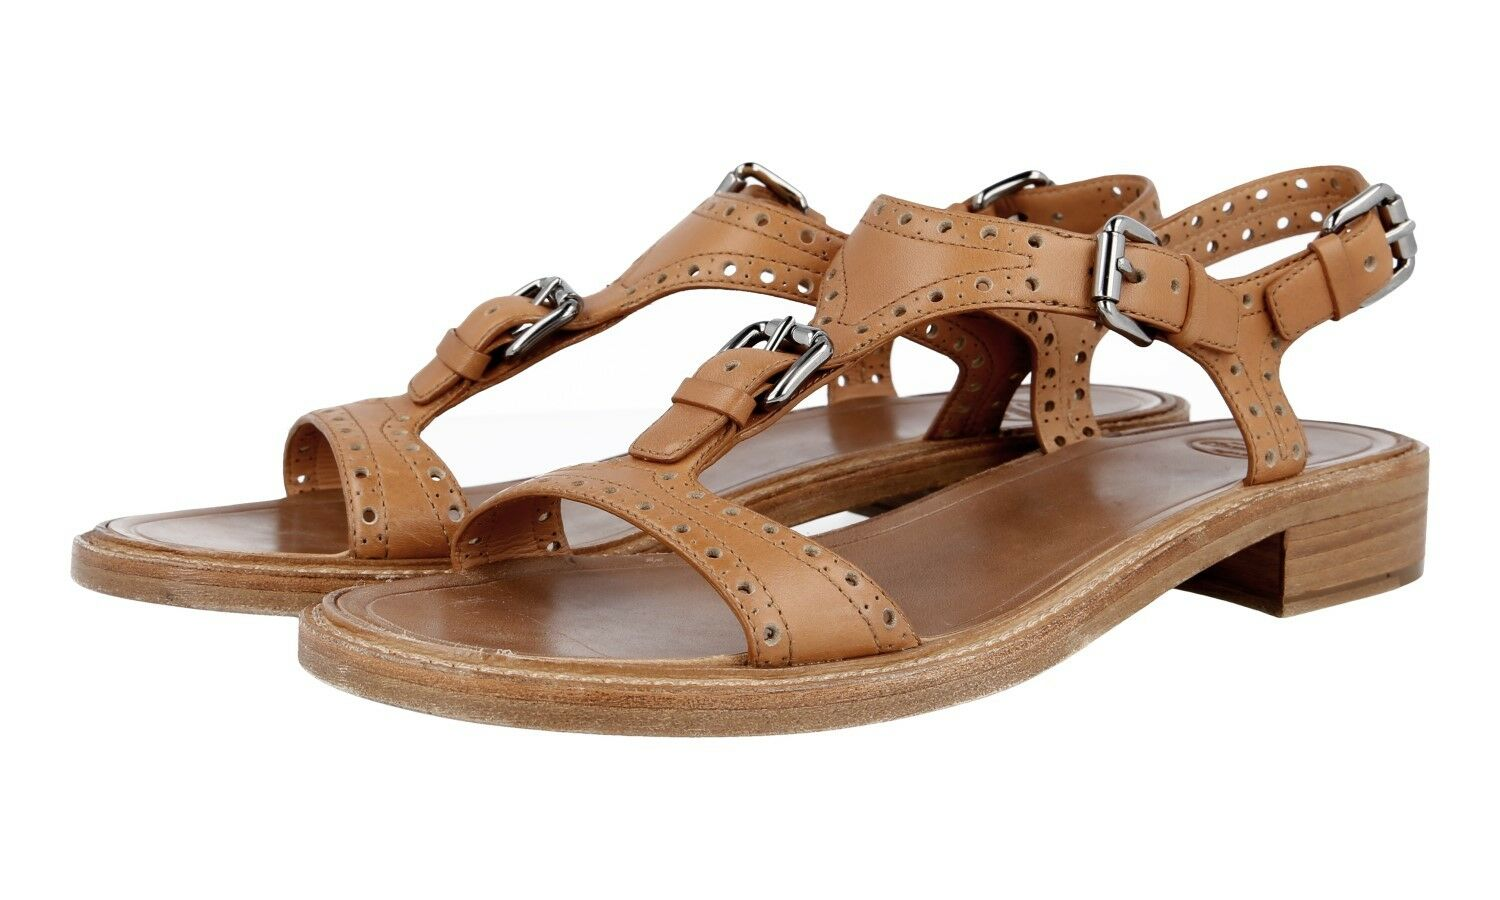 AUTH LUXURY CHURCH'S SANDALS SHOES A740309 NATURAL NEW 40 40,5 UK 7